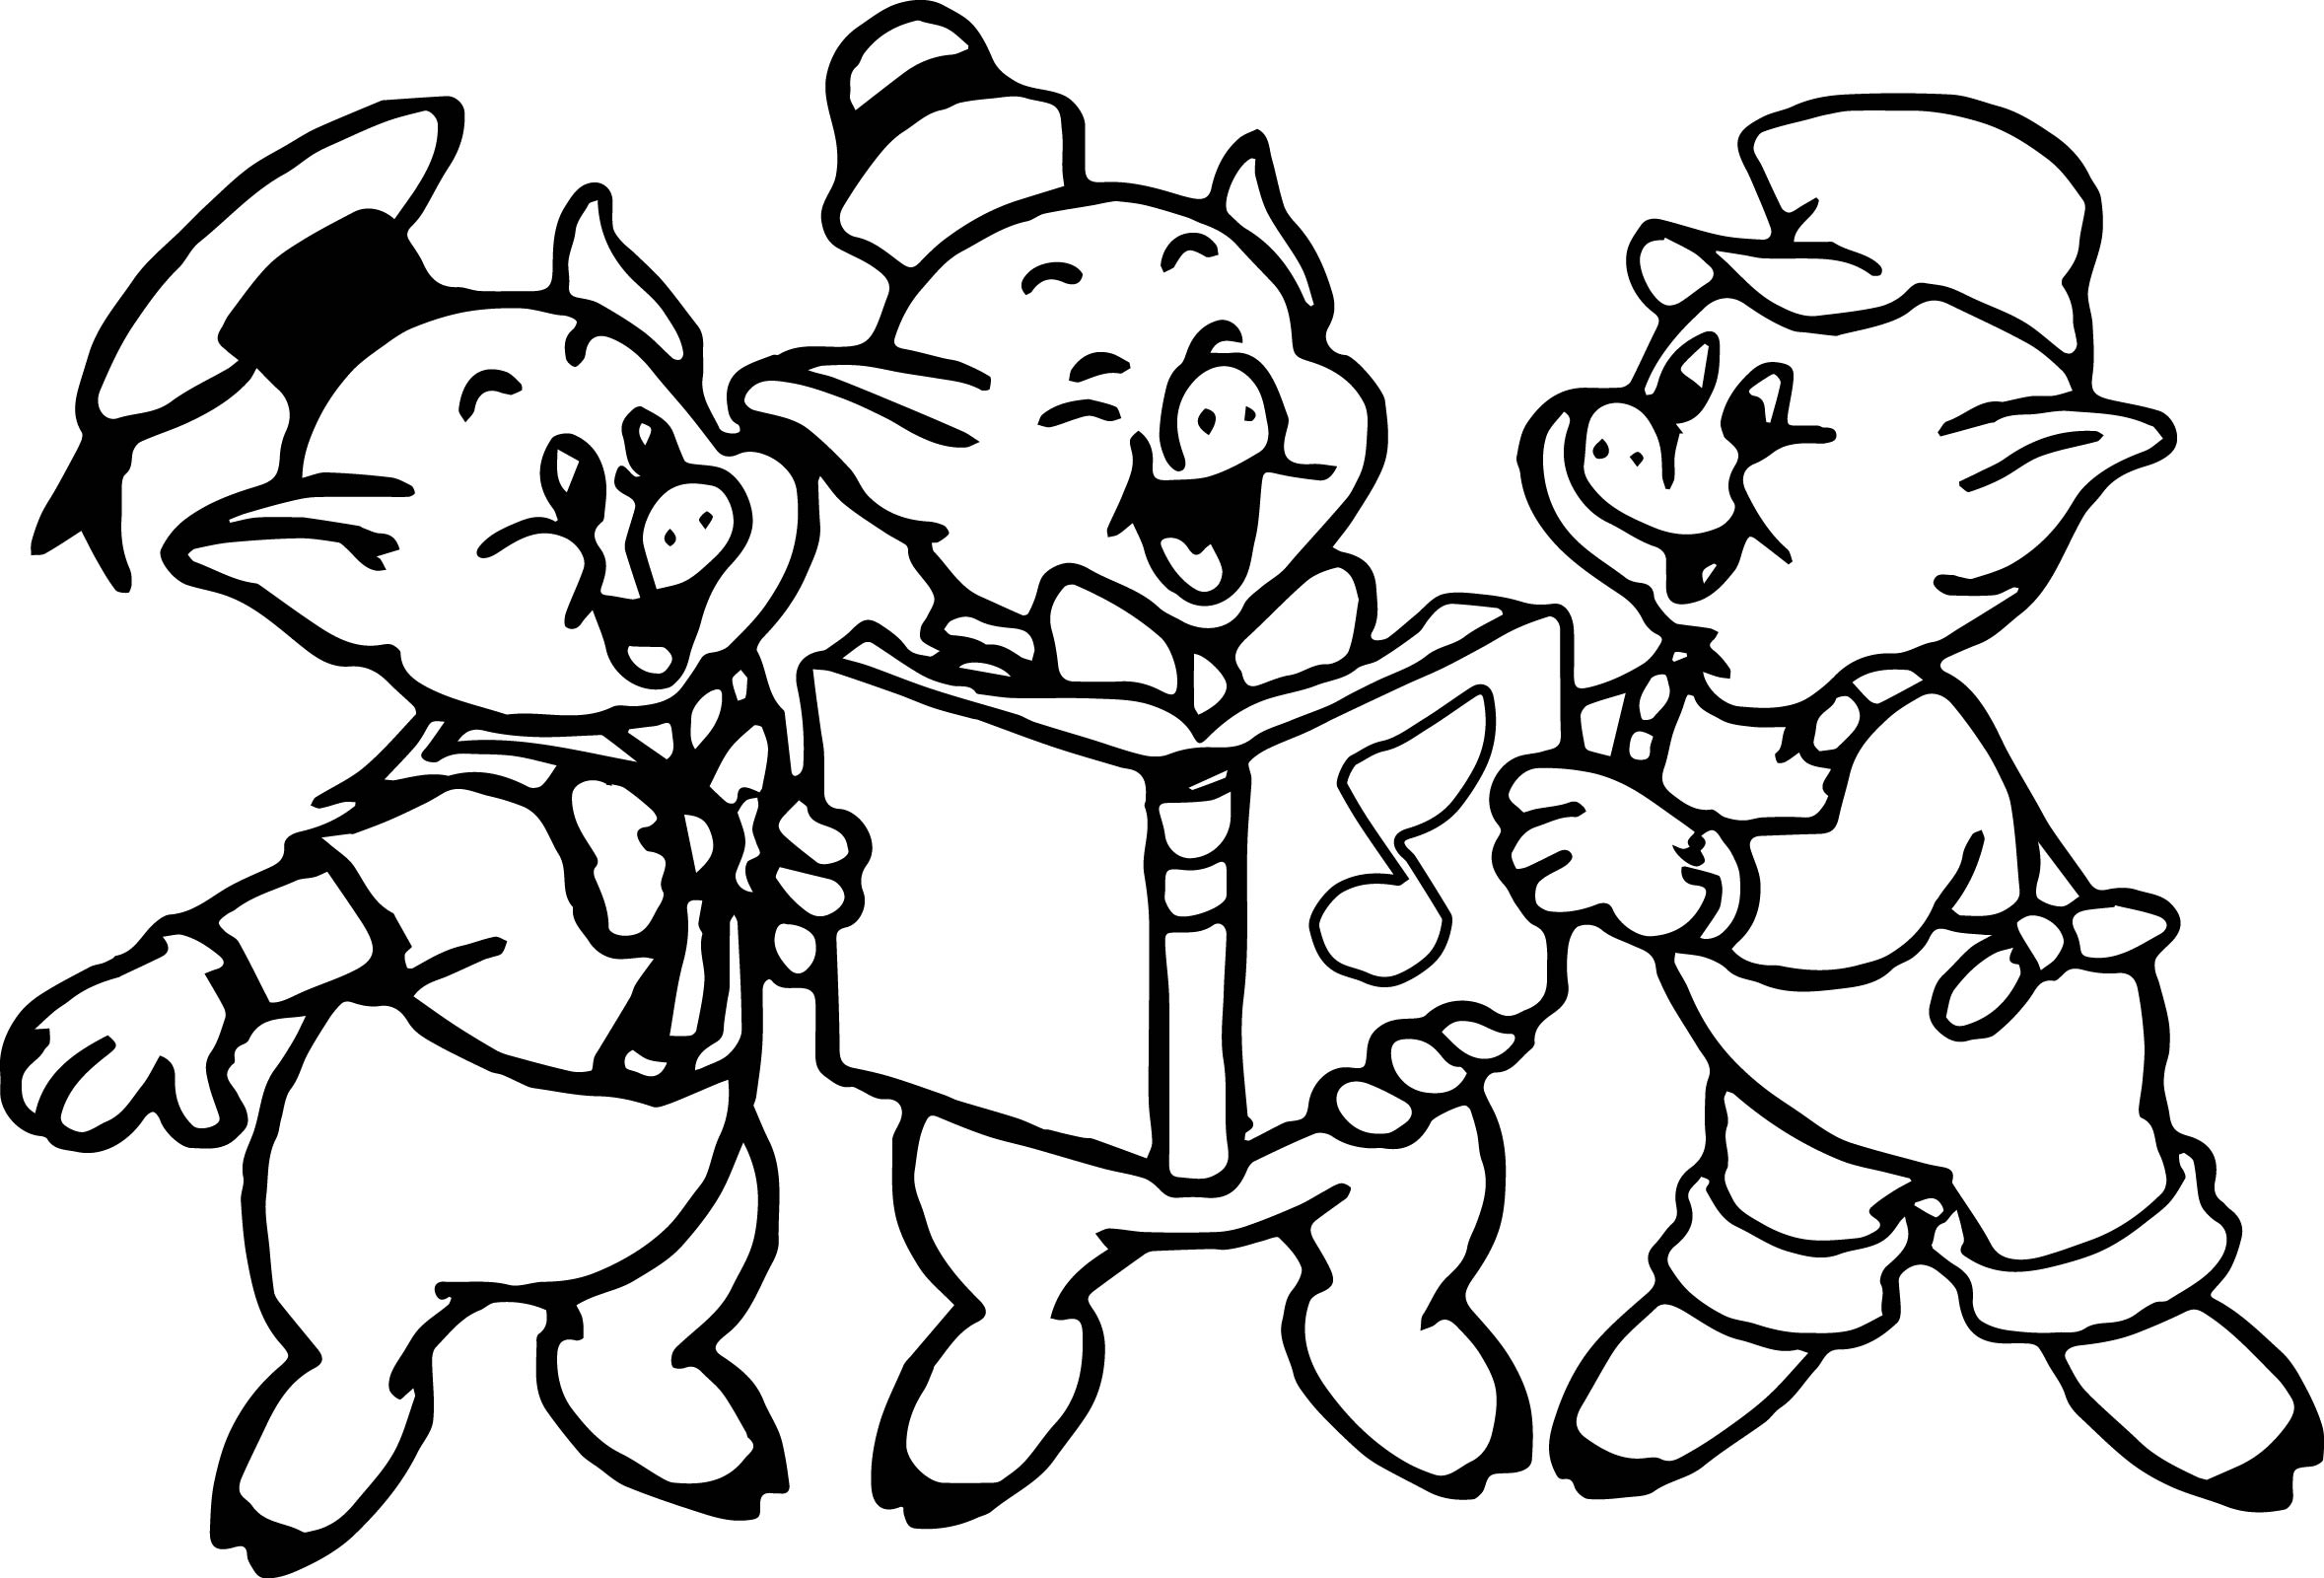 Three Pigs Page Printable Coloring Pages